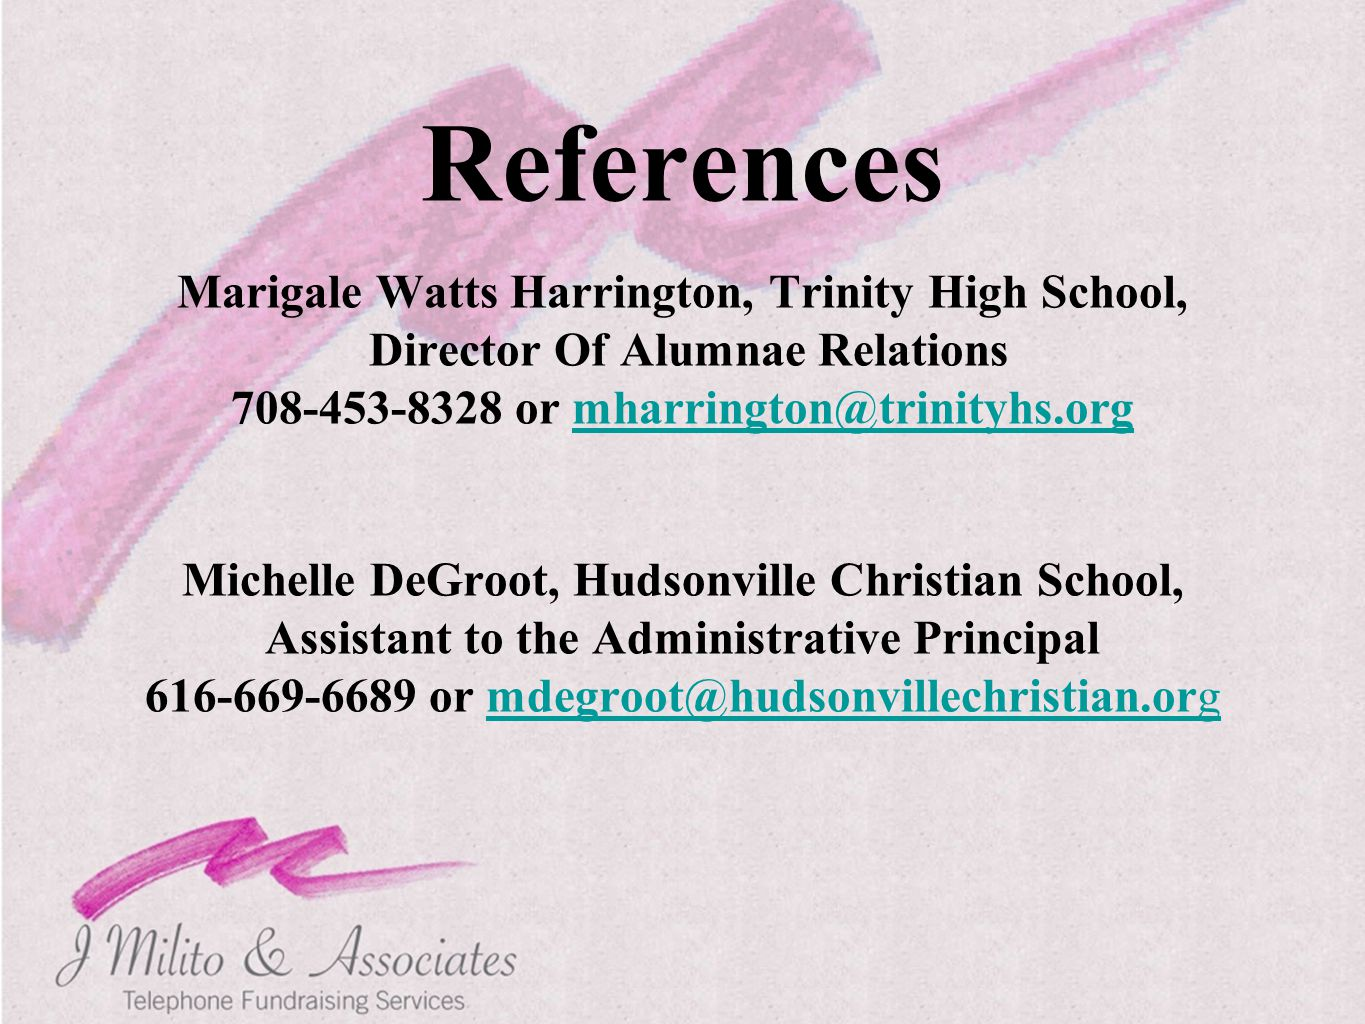 References Marigale Watts Harrington, Trinity High School, Director Of Alumnae Relations 708-453-8328 or mharrington@trinityhs.orgmharrington@trinityh